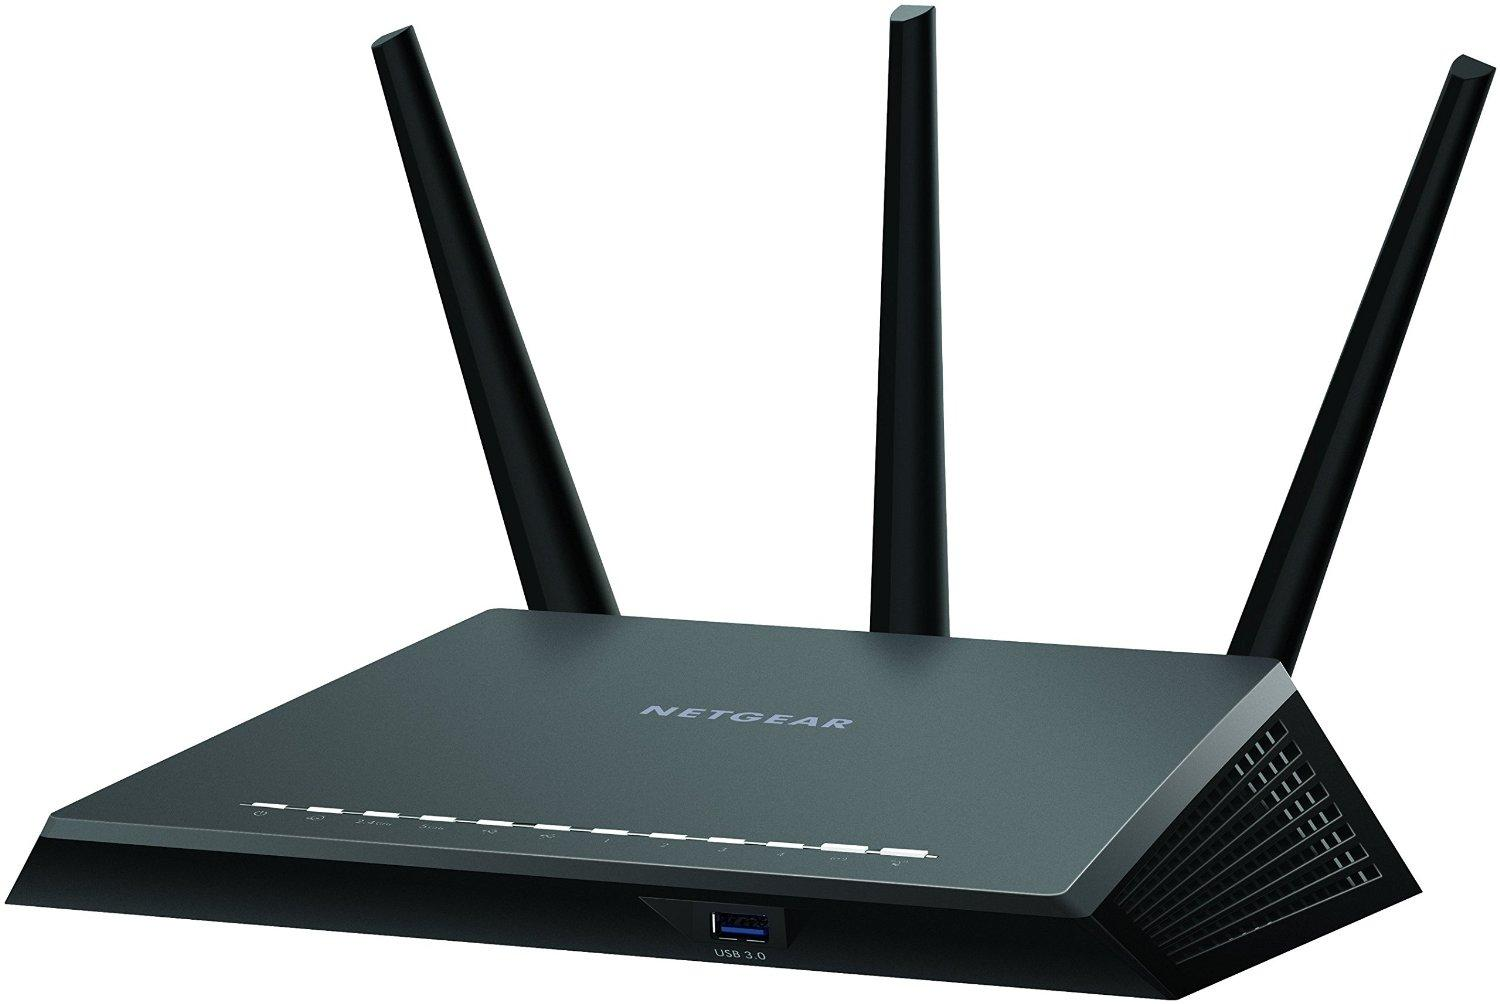 NETGEAR Nighthawk AC1900 Dual Band Wi-Fi Gigabit Router (R7000) with Open Source Support